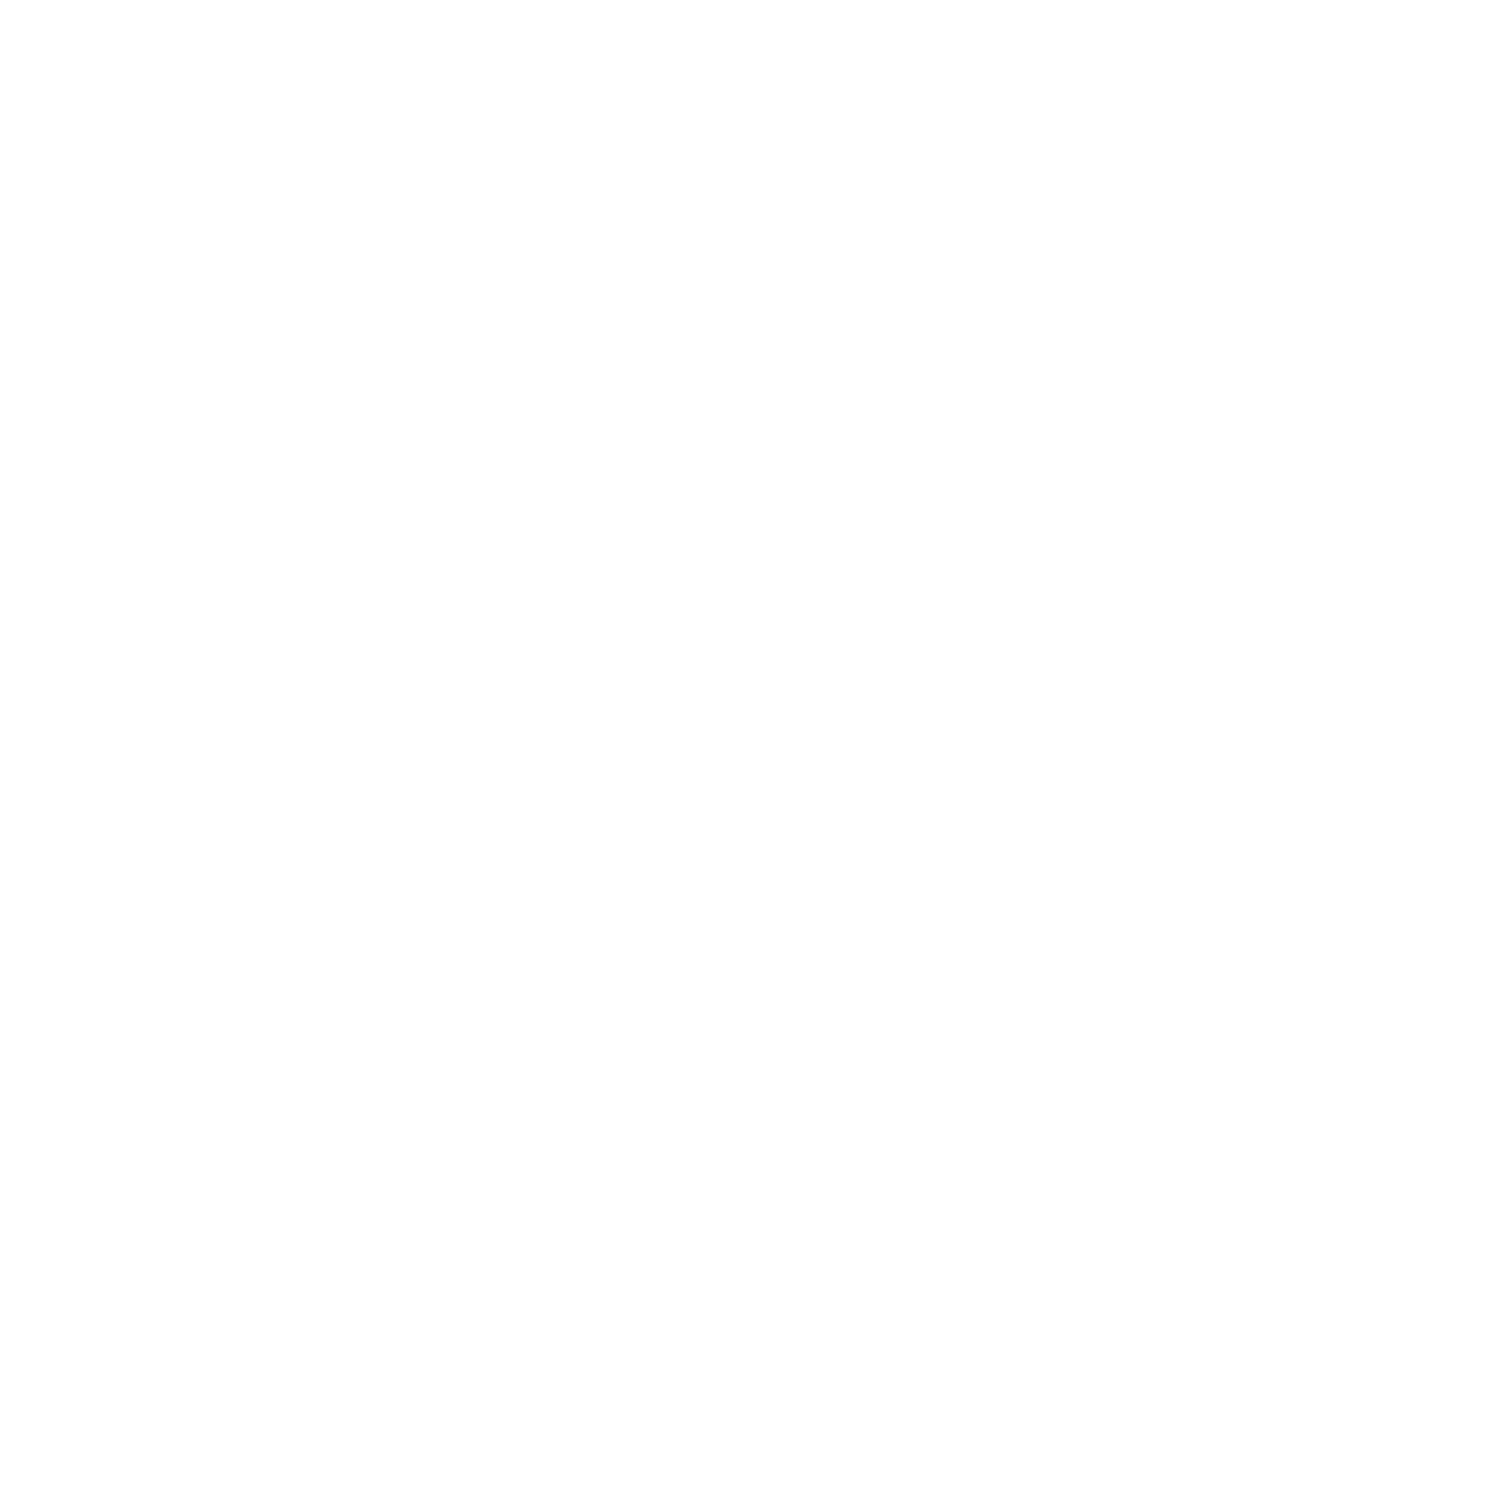 The Great Room